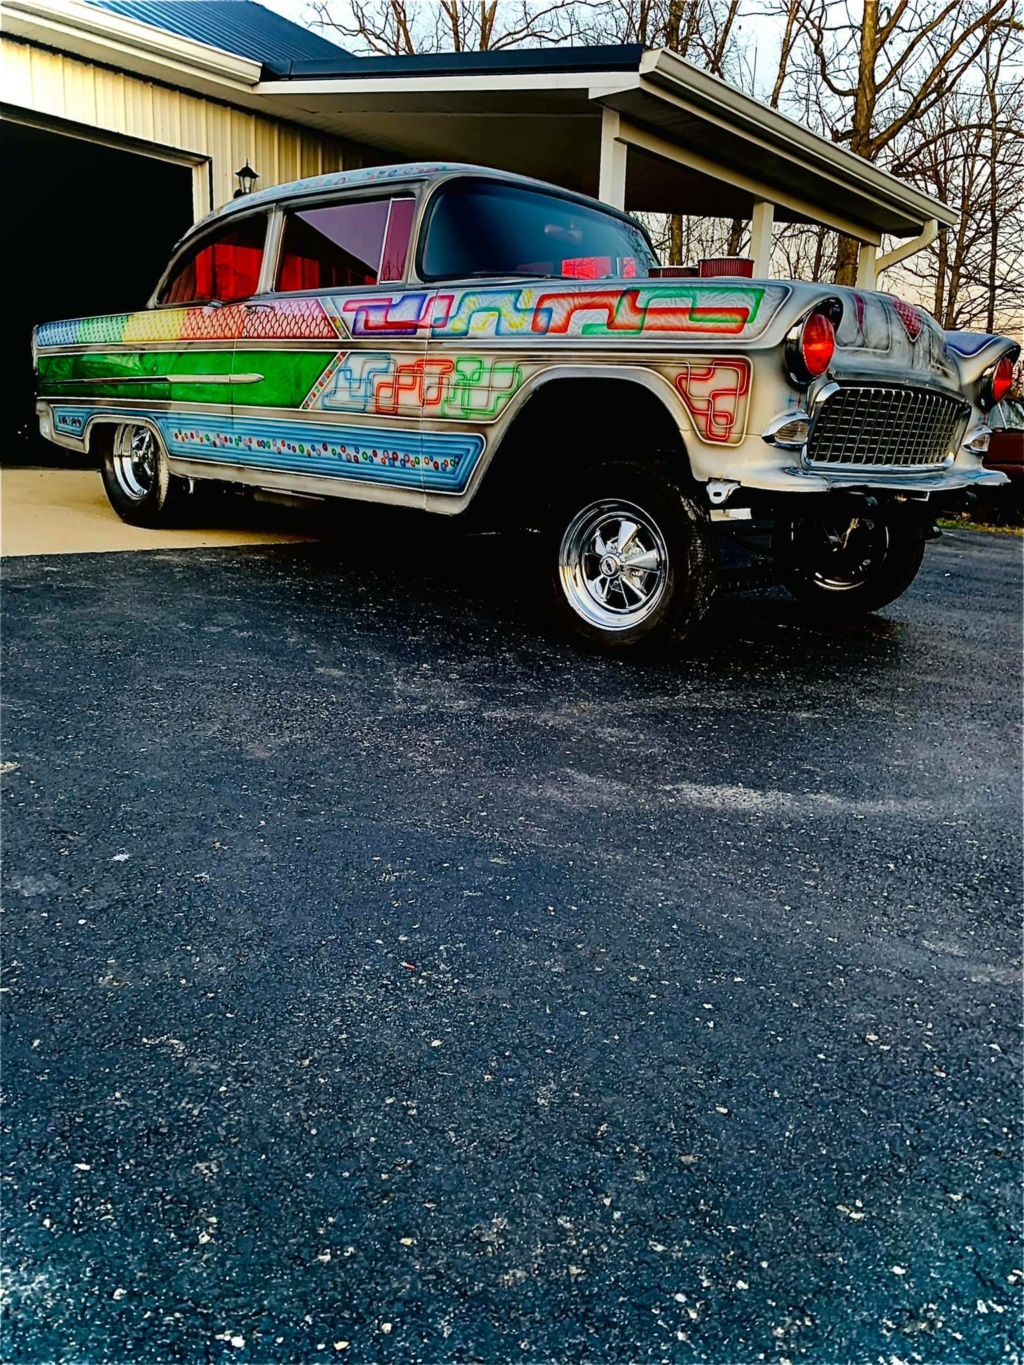 Ronnie N Kristina Jones - 1955 Chevrolet Gasser sixties look with flake, panneling, lace painting 15720510